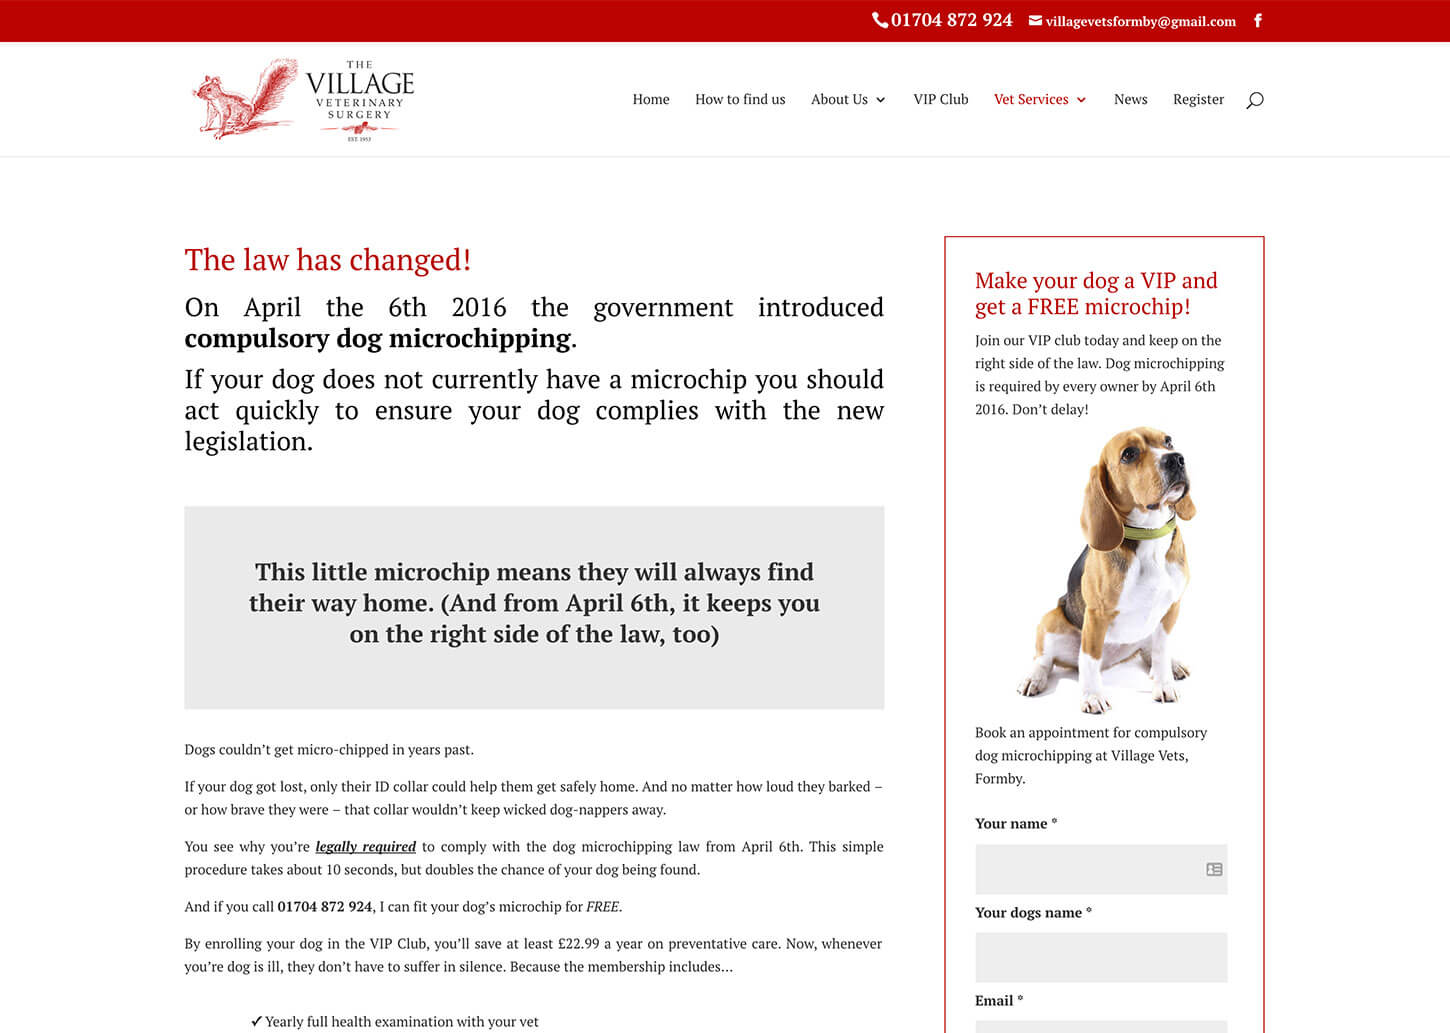 Village Vets website design: Compulsory dog microchipping landing page